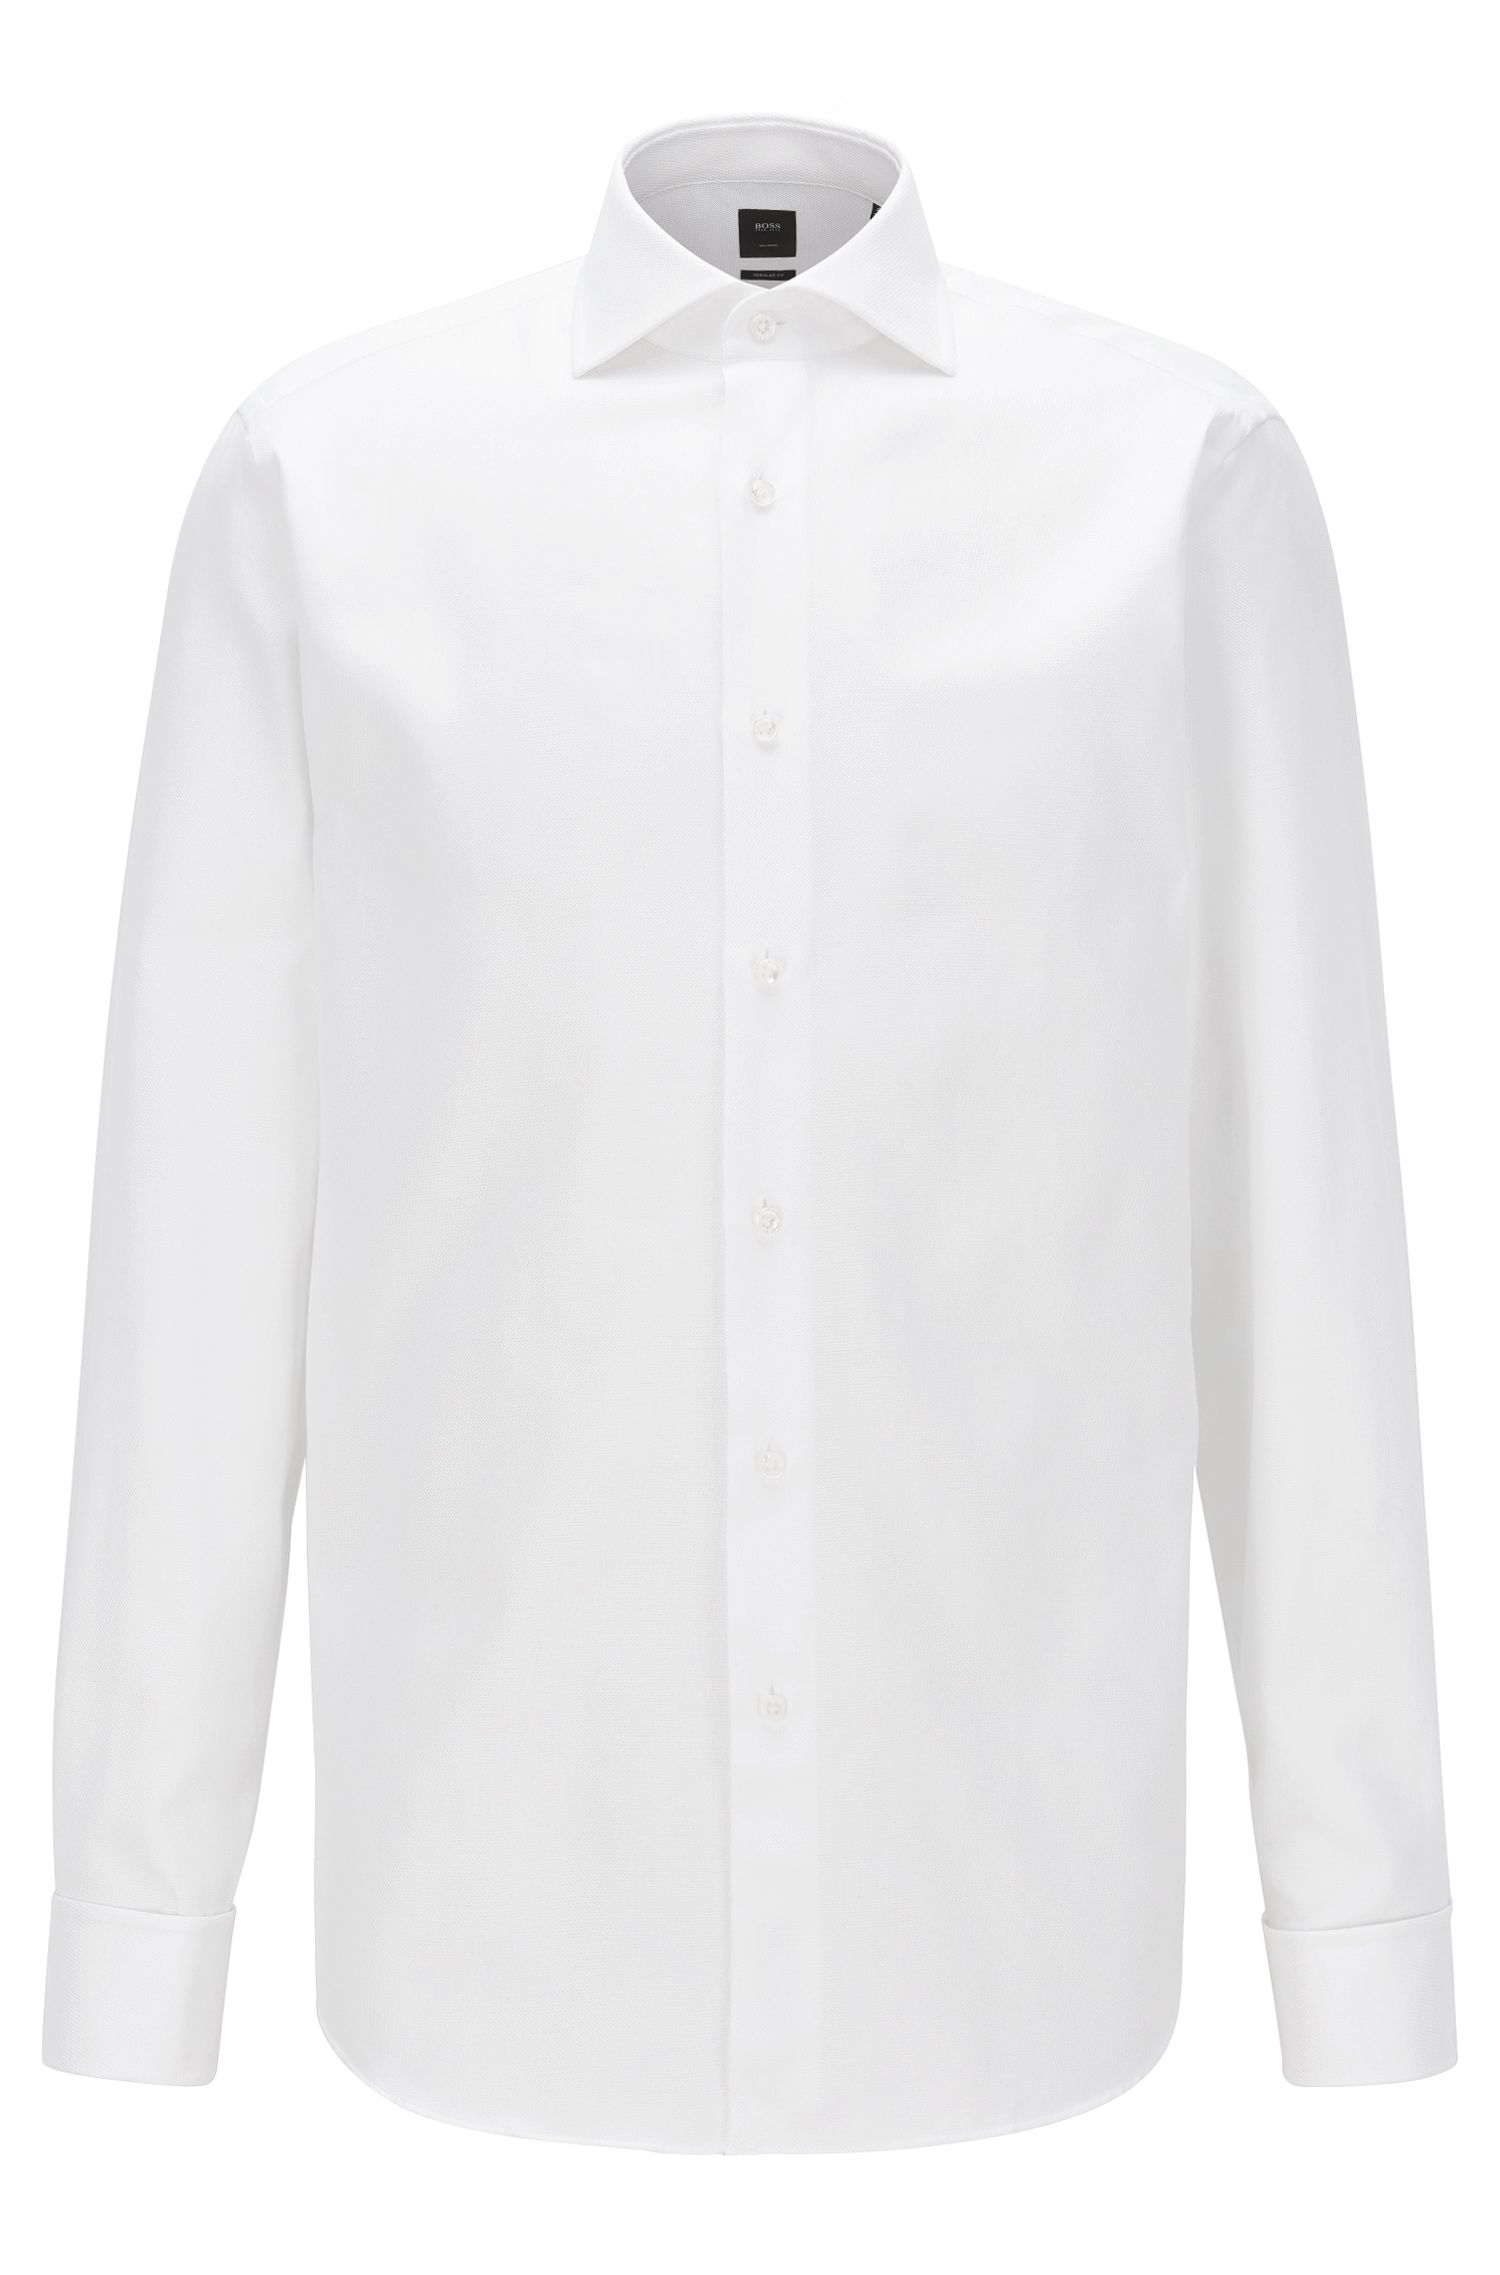 Two-ply structured cotton shirt in a regular fit